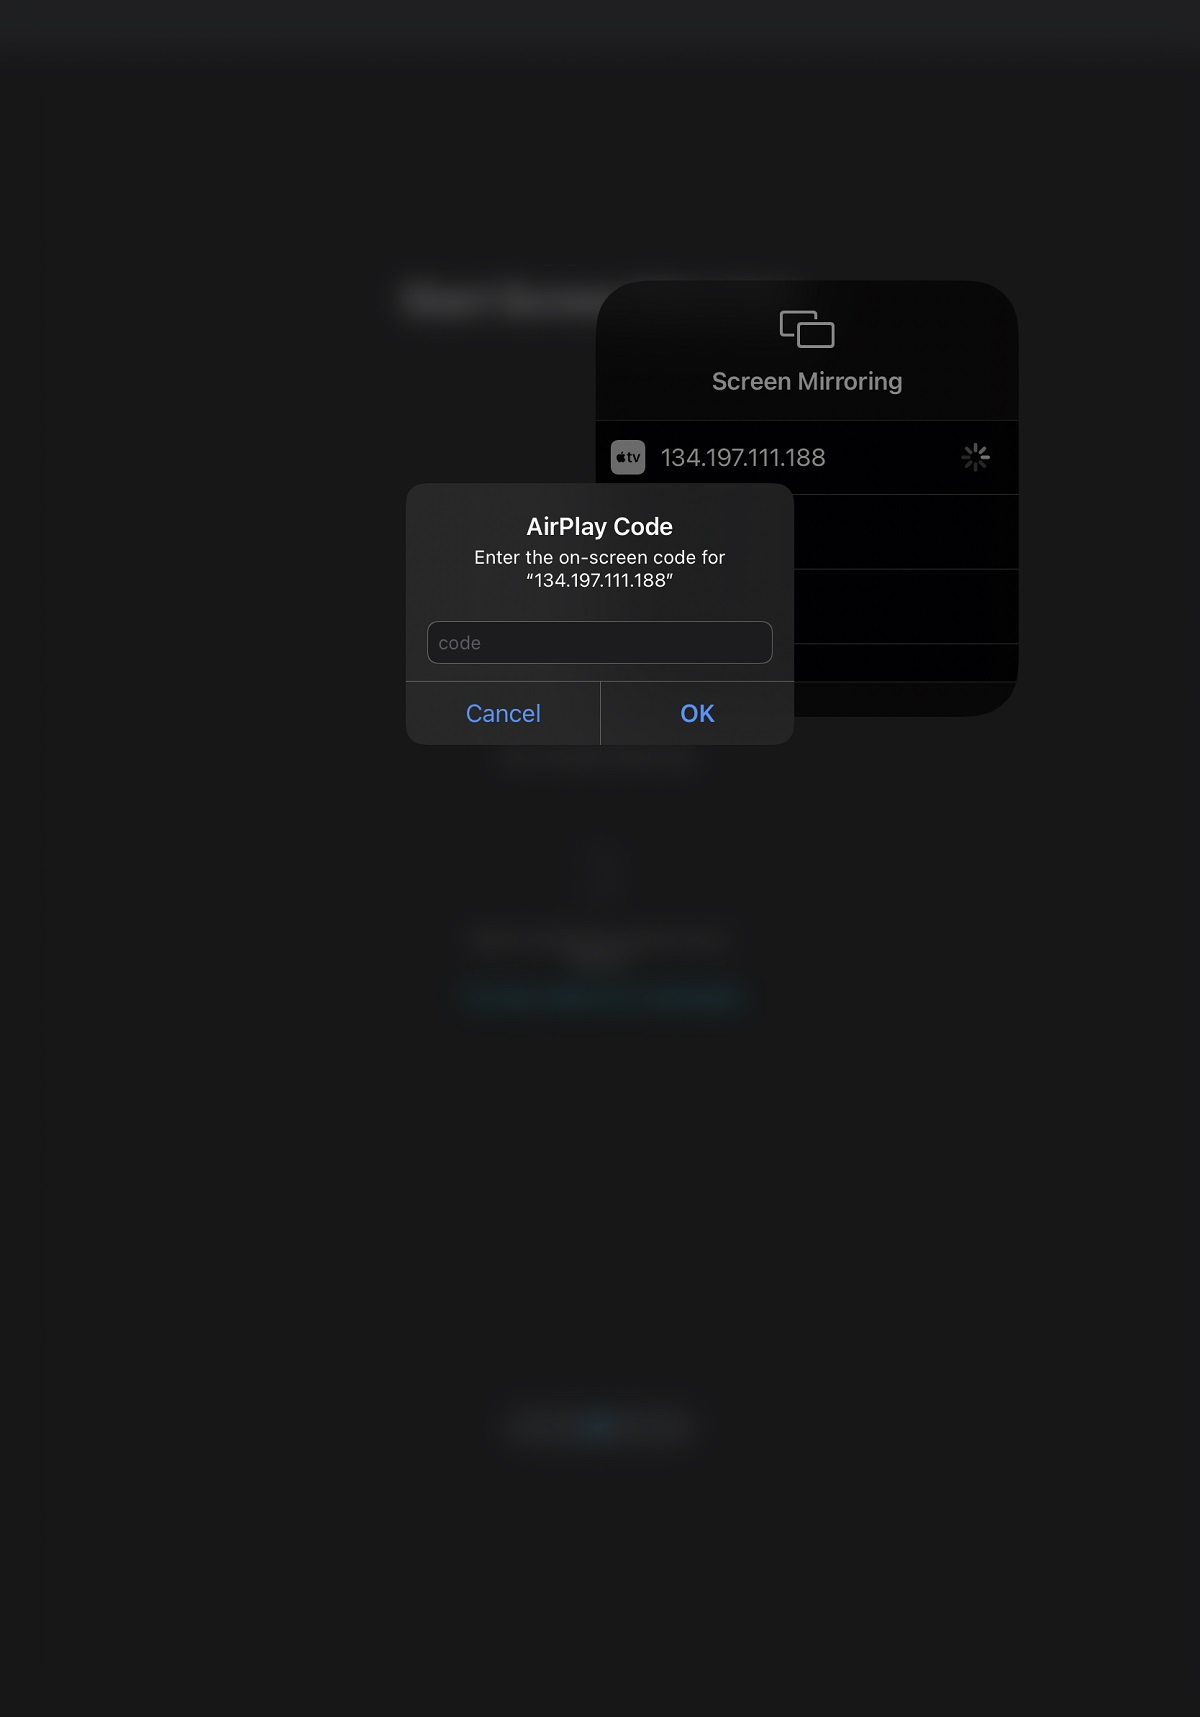 Screenshot of the AirPlay code entry interface in iOS, prompting to enter the 4-digit code corresponding to the IP address selected in the previous step.